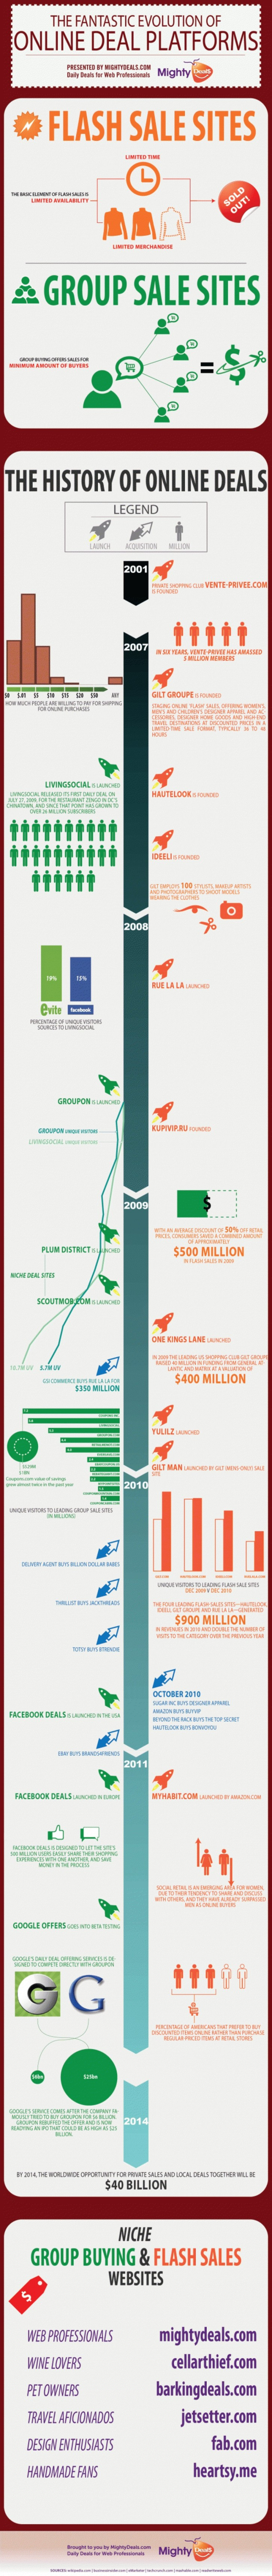 The fantastic evolution of online deal platforms